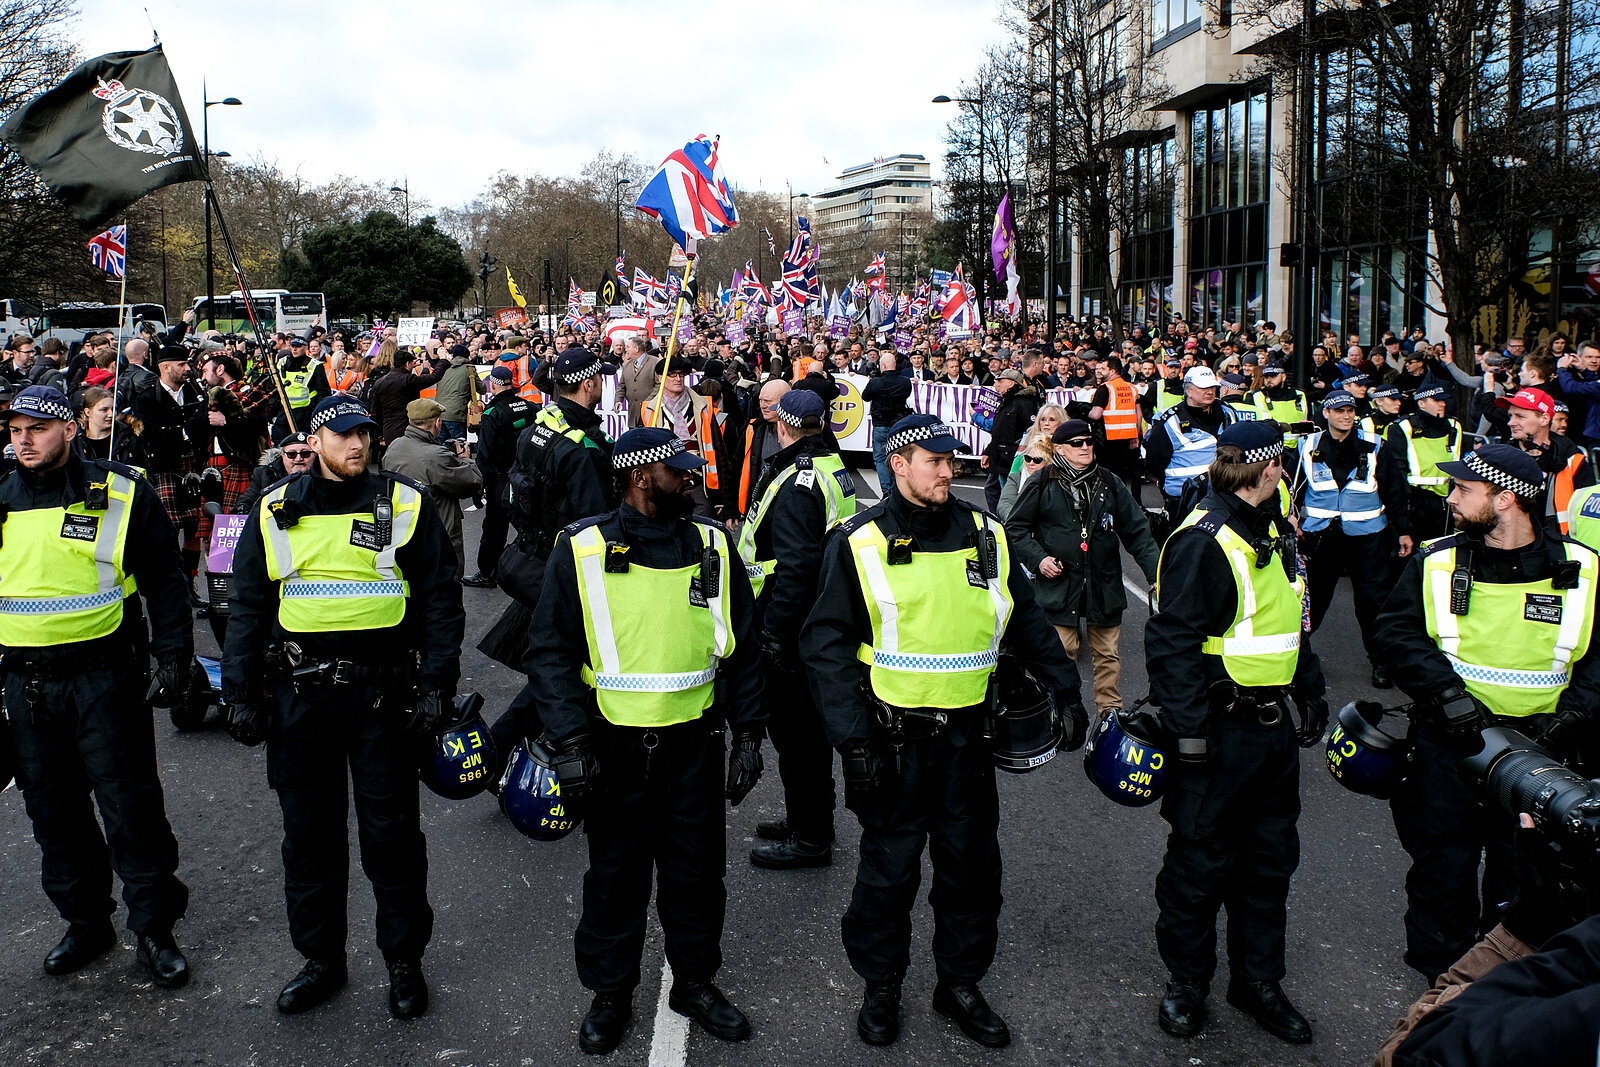 Brexit March 9 March 2019